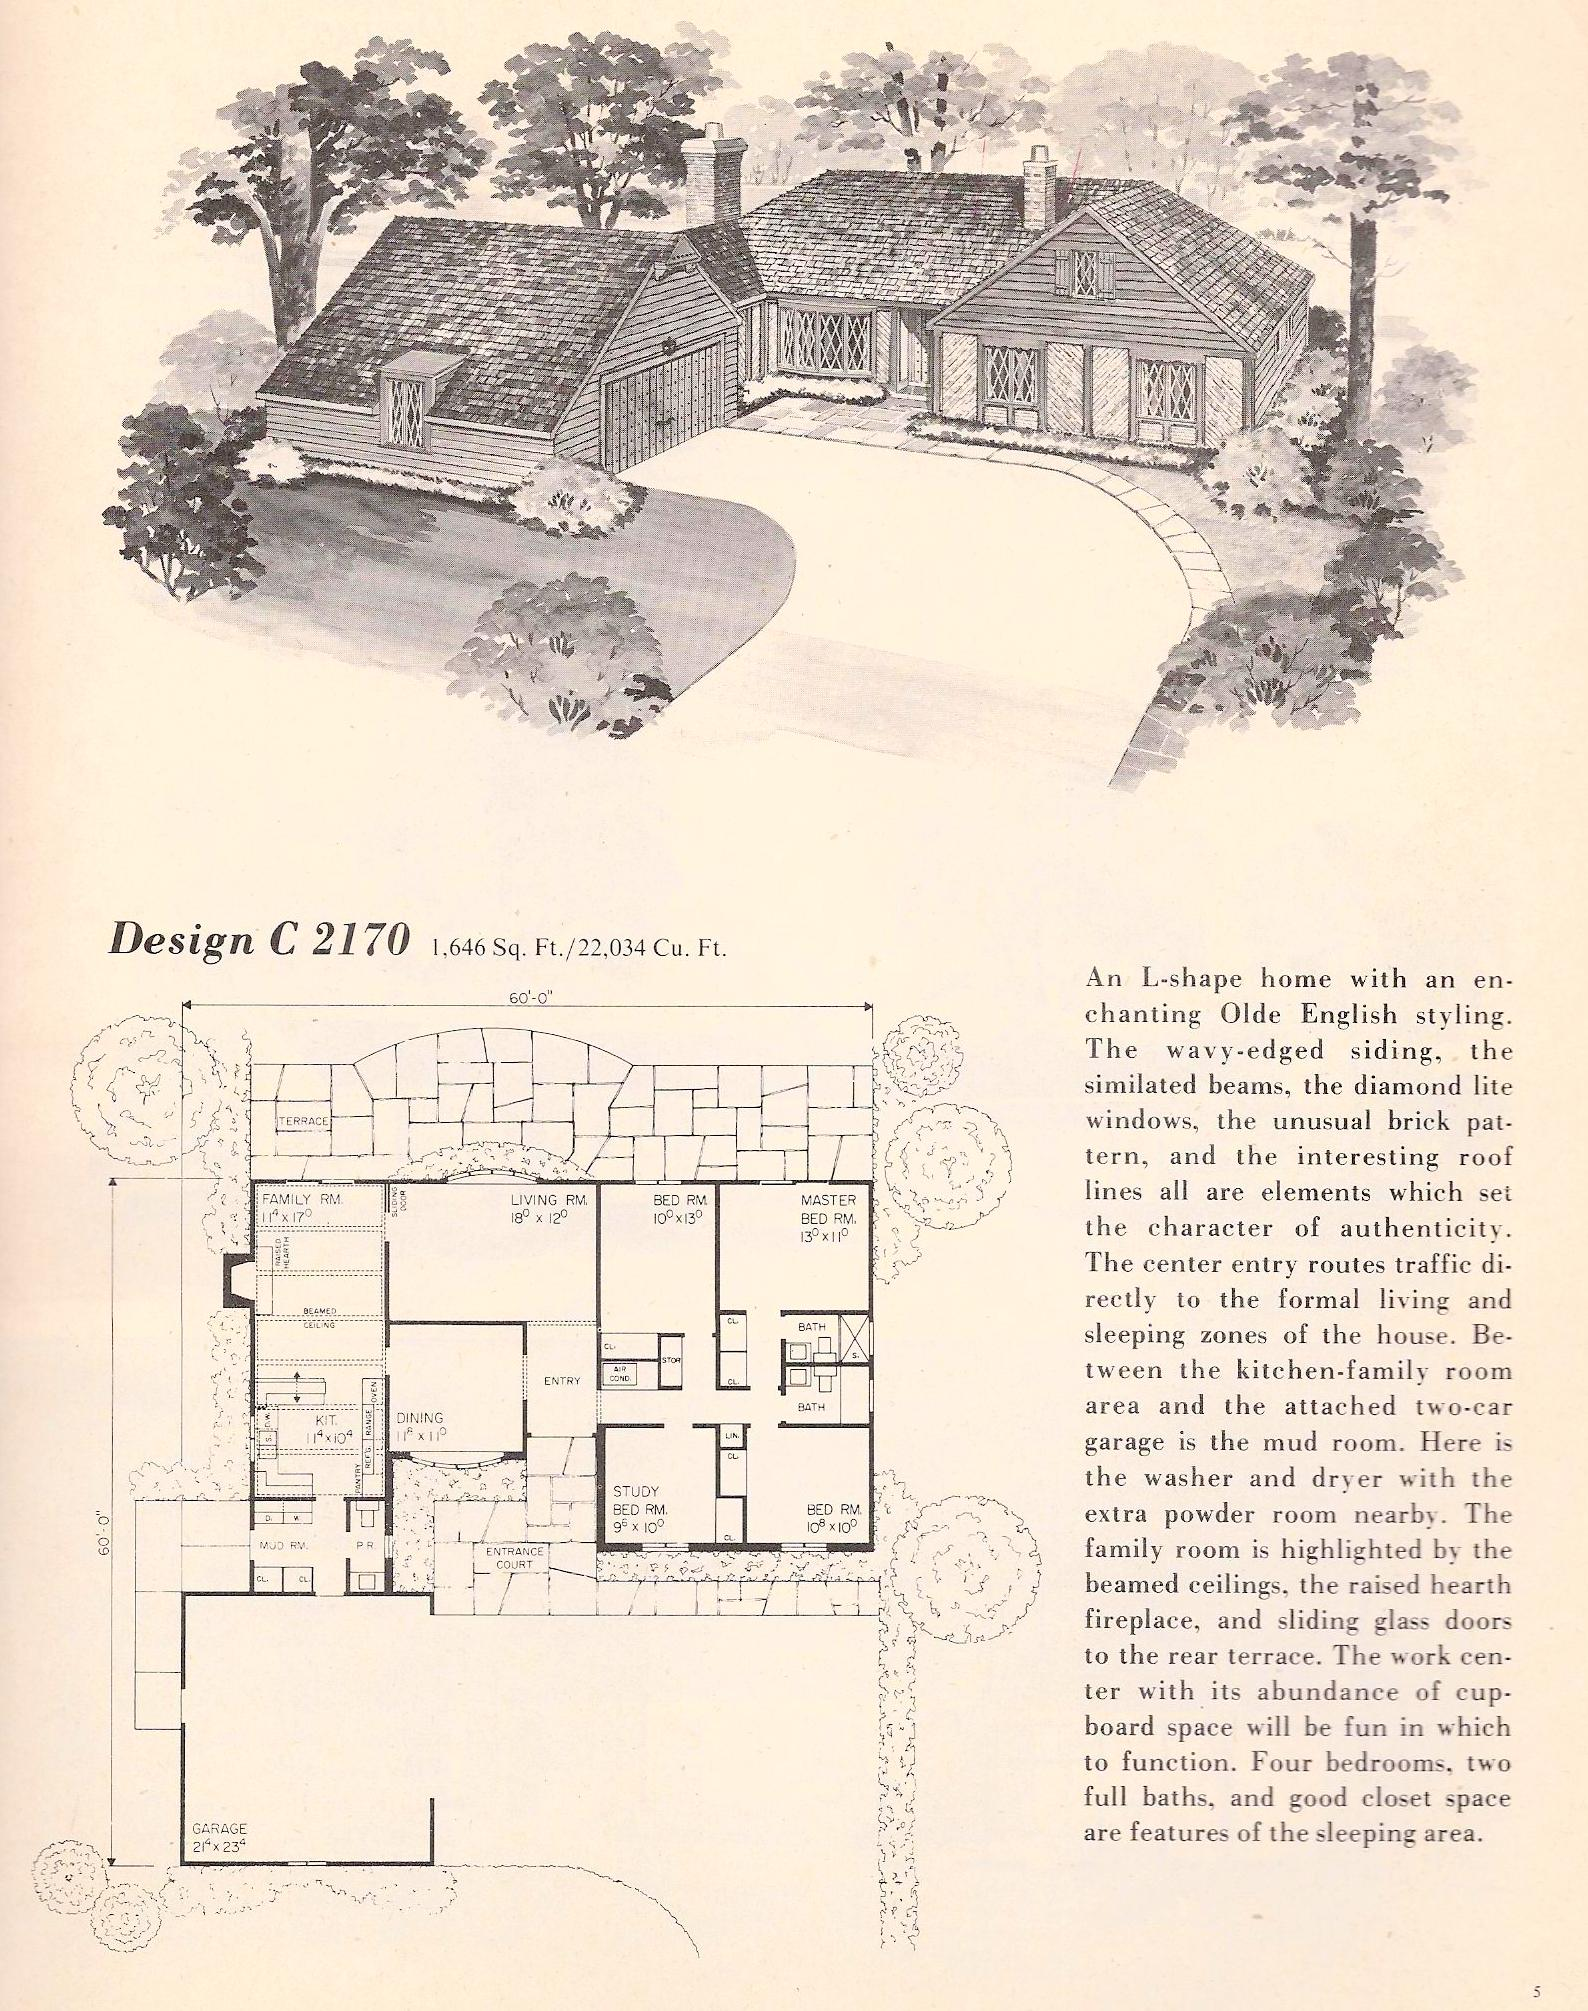 Vintage house plans 2170 antique alter ego for Classic tudor house plans